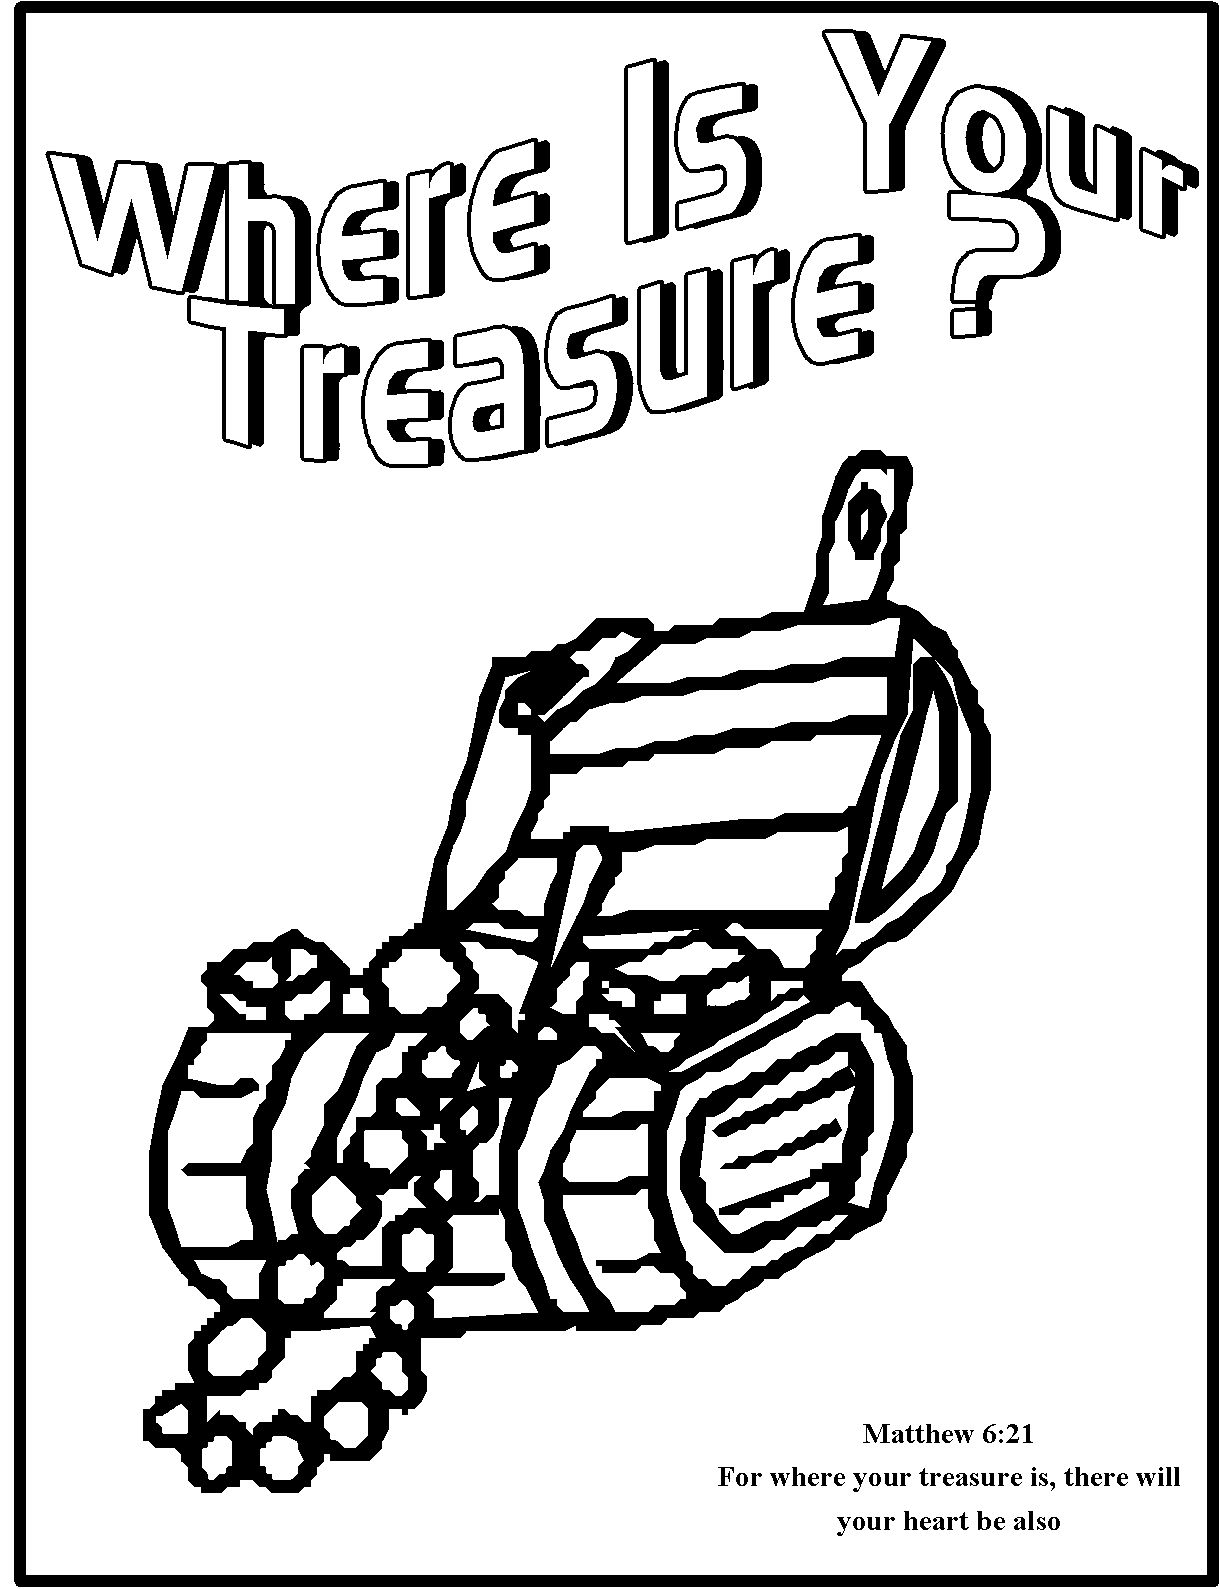 Children's Gems In My Treasure Box: Where Is Your Treasure